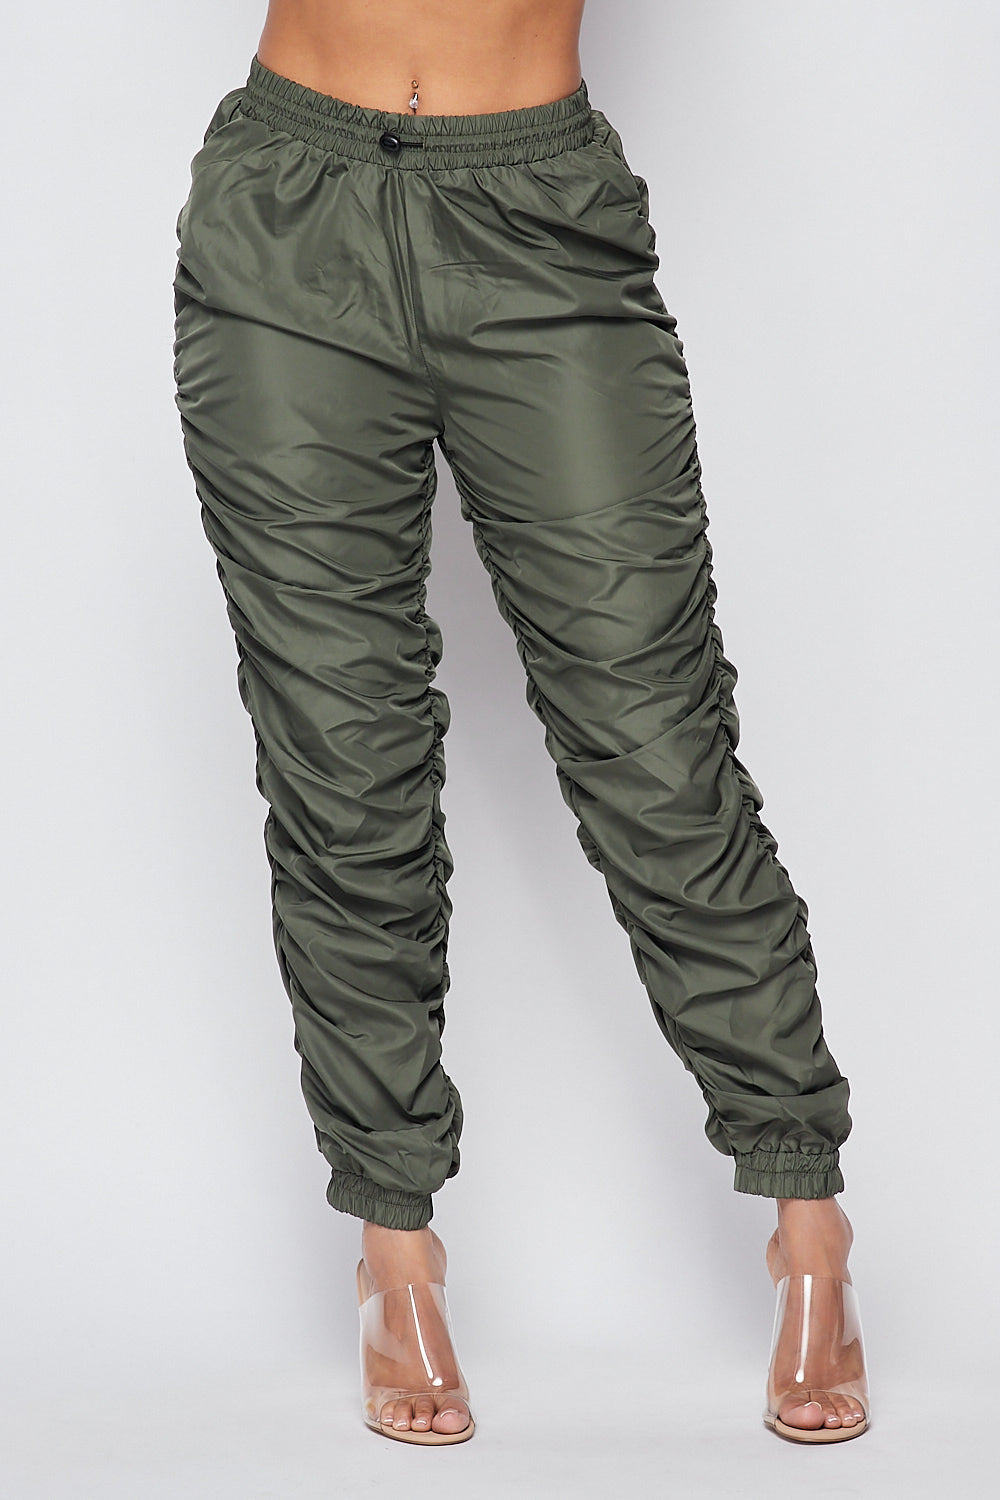 Sexy Fitted Jogger Pants-OLIVE - Fashion House USA